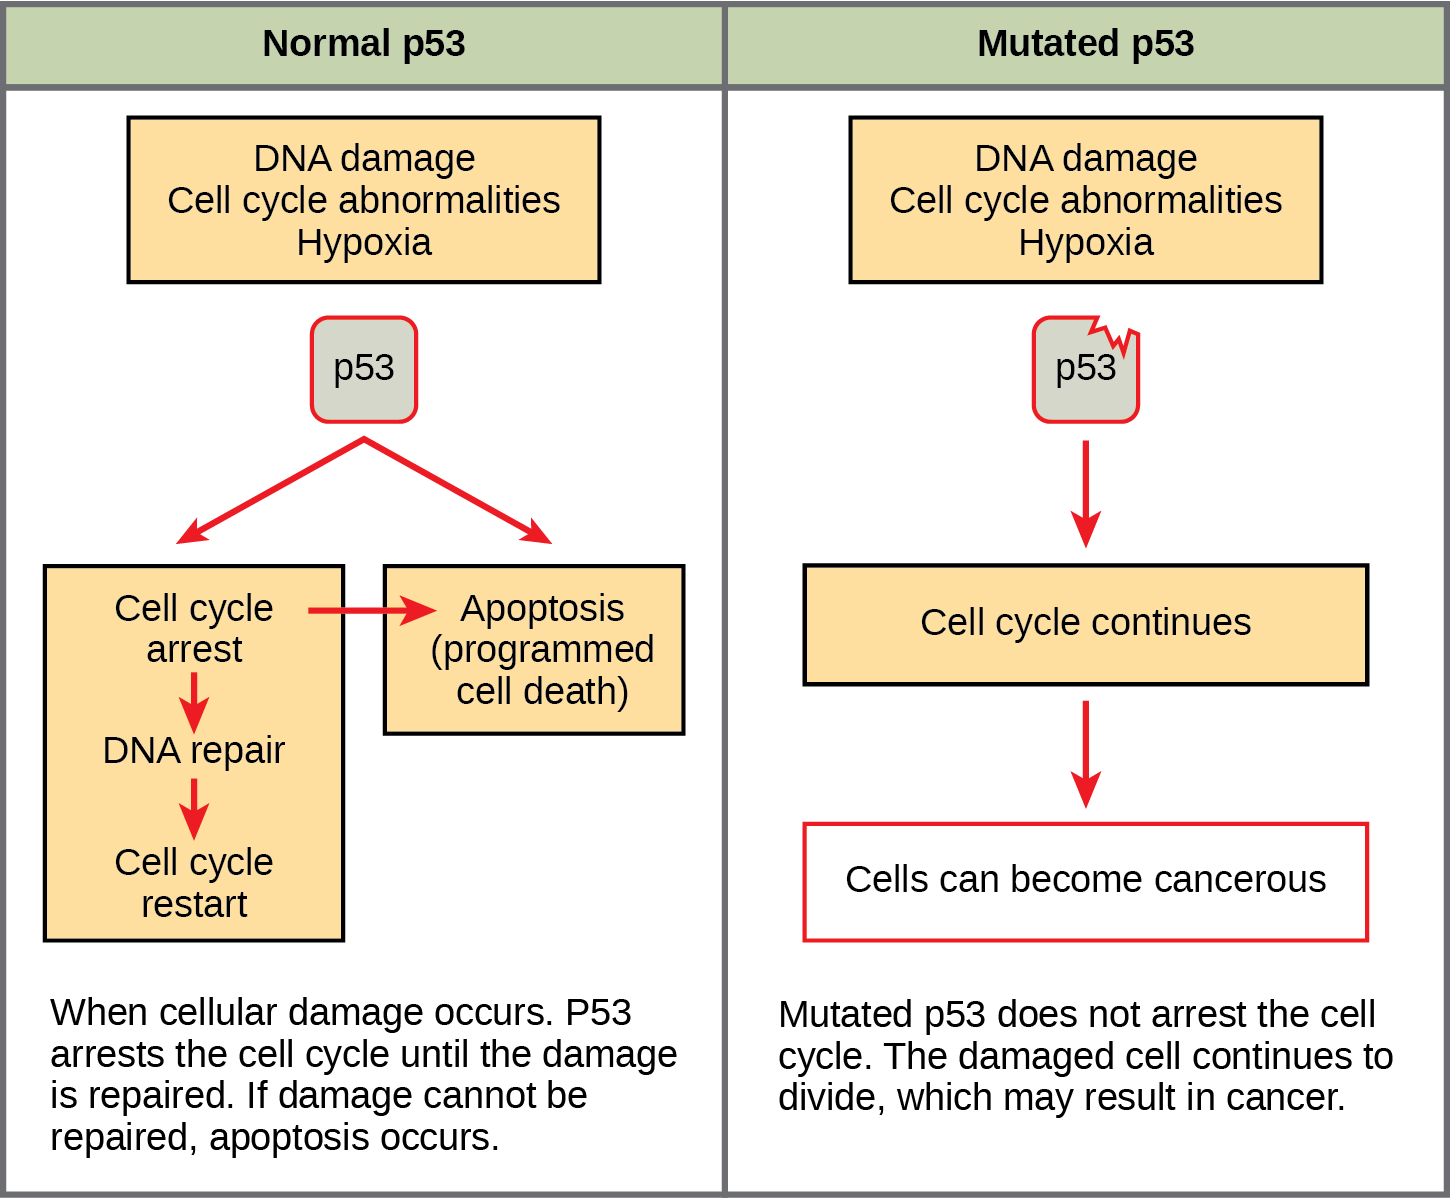 Part a: This illustration shows cell cycle regulation by normal lower case p 5 3, which arrests the cell cycle in response to D N A damage, cell cycle abnormalities, or hypoxia. Once the damage is repaired, the cell cycle restarts. If the damage cannot be repaired, apoptosis meaning programmed cell death, occurs. Part b: Mutated p 5 3 does not arrest the cell cycle in response to cellular damage. As a result, the cell cycle continues, and the cell may become cancerous.